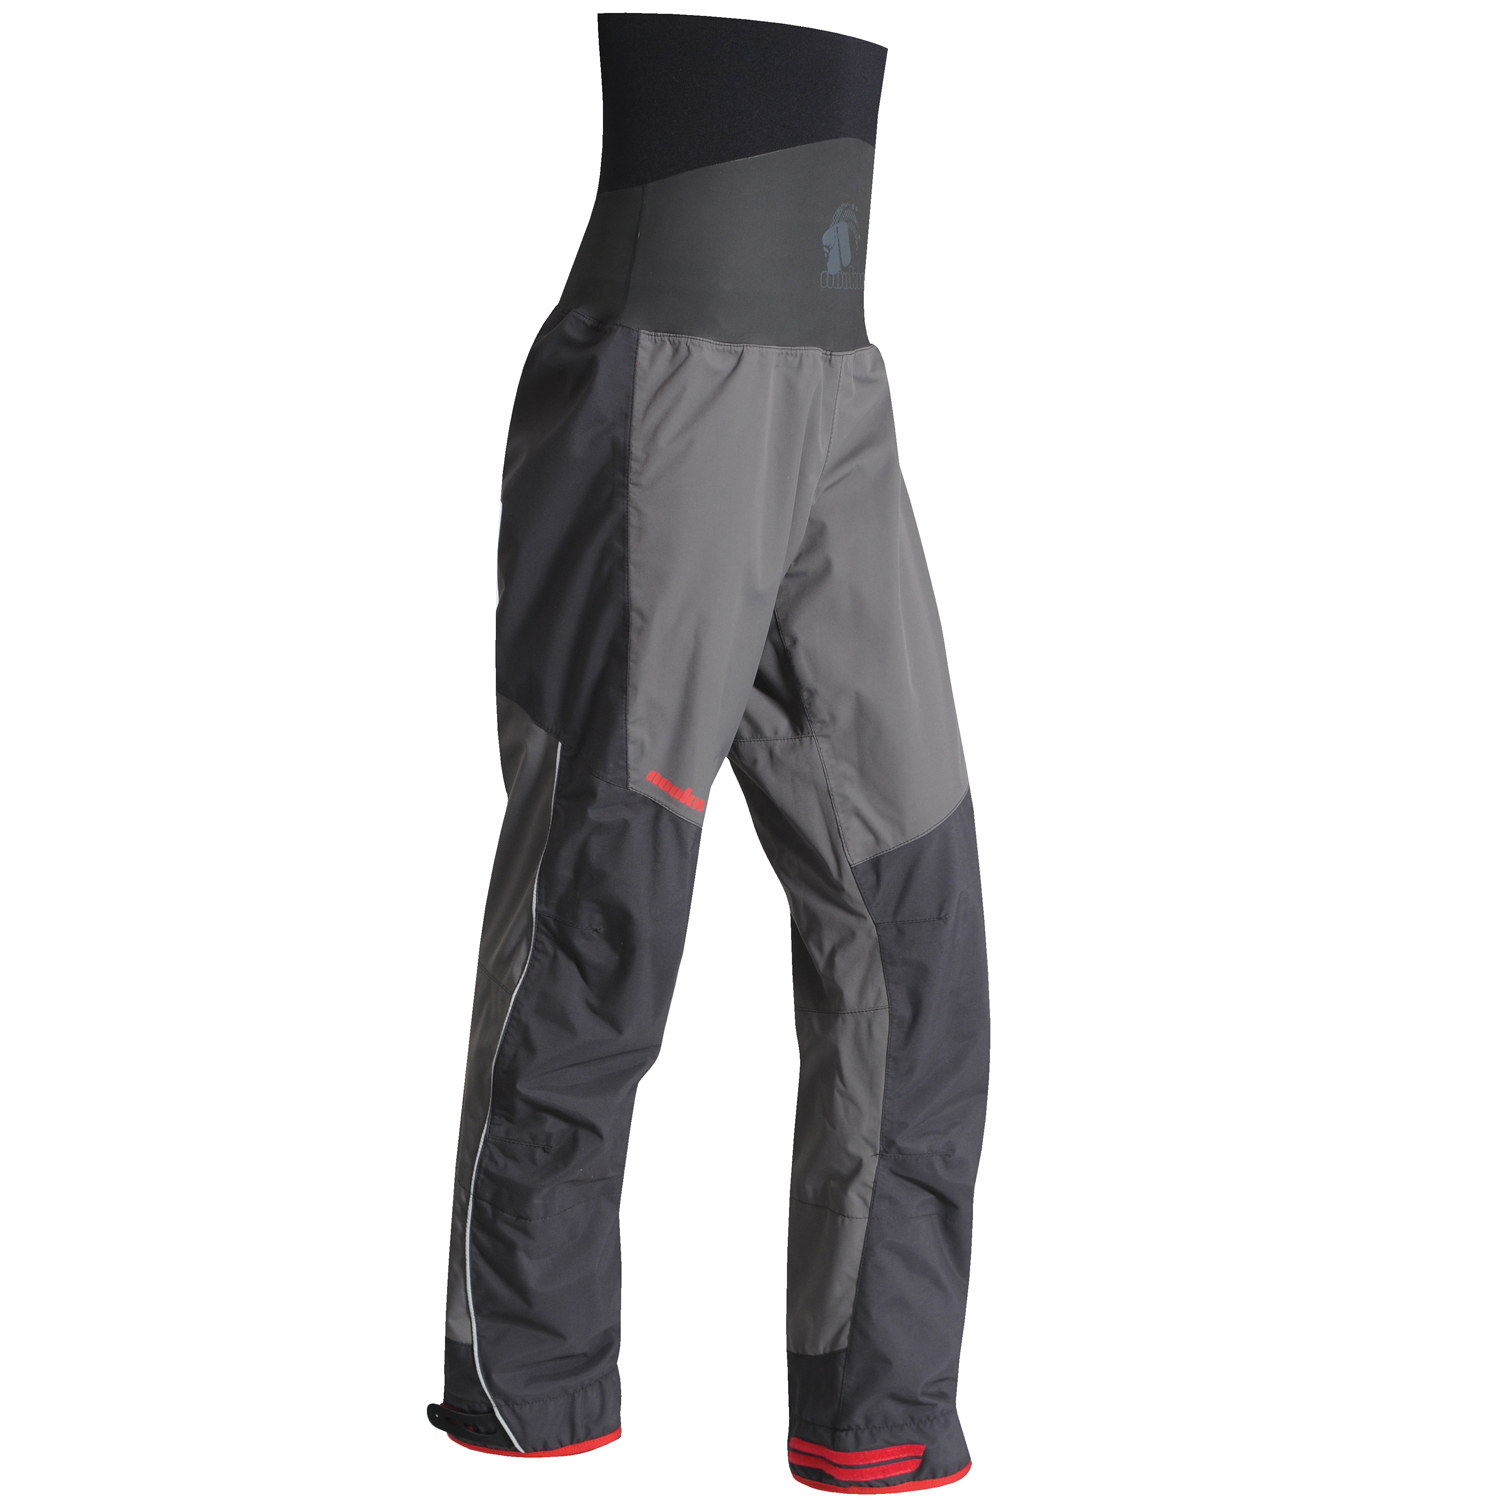 Nookie Evolution Dry Trousers with Latex Ankle Cuffs